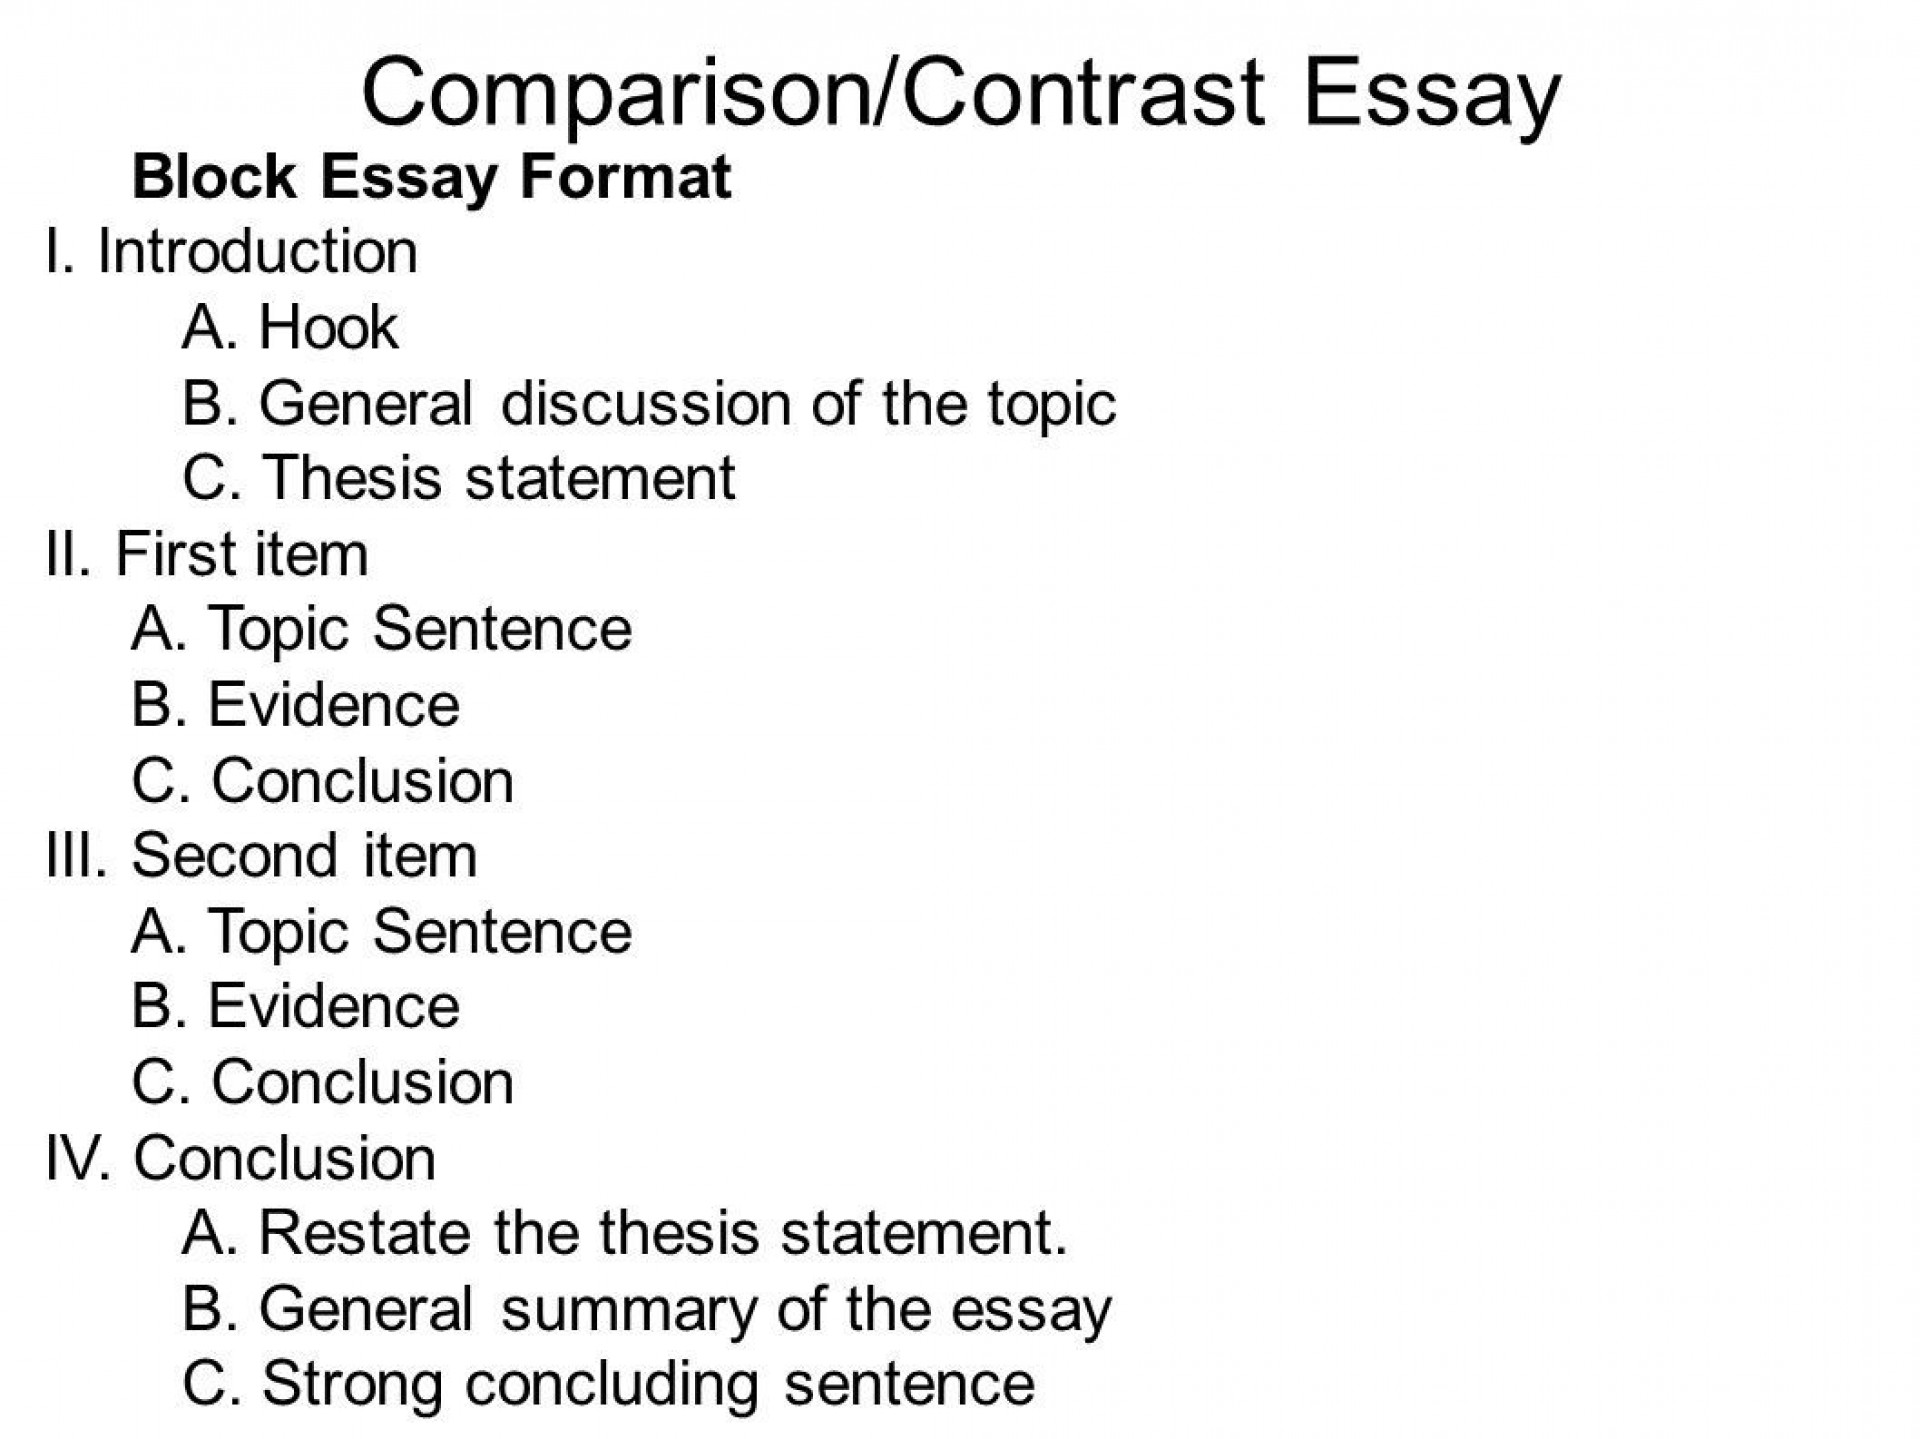 006 Essay Example How To Conclude Compare And Fantastic A Contrast Start Writing Comparison Write Begin 1920